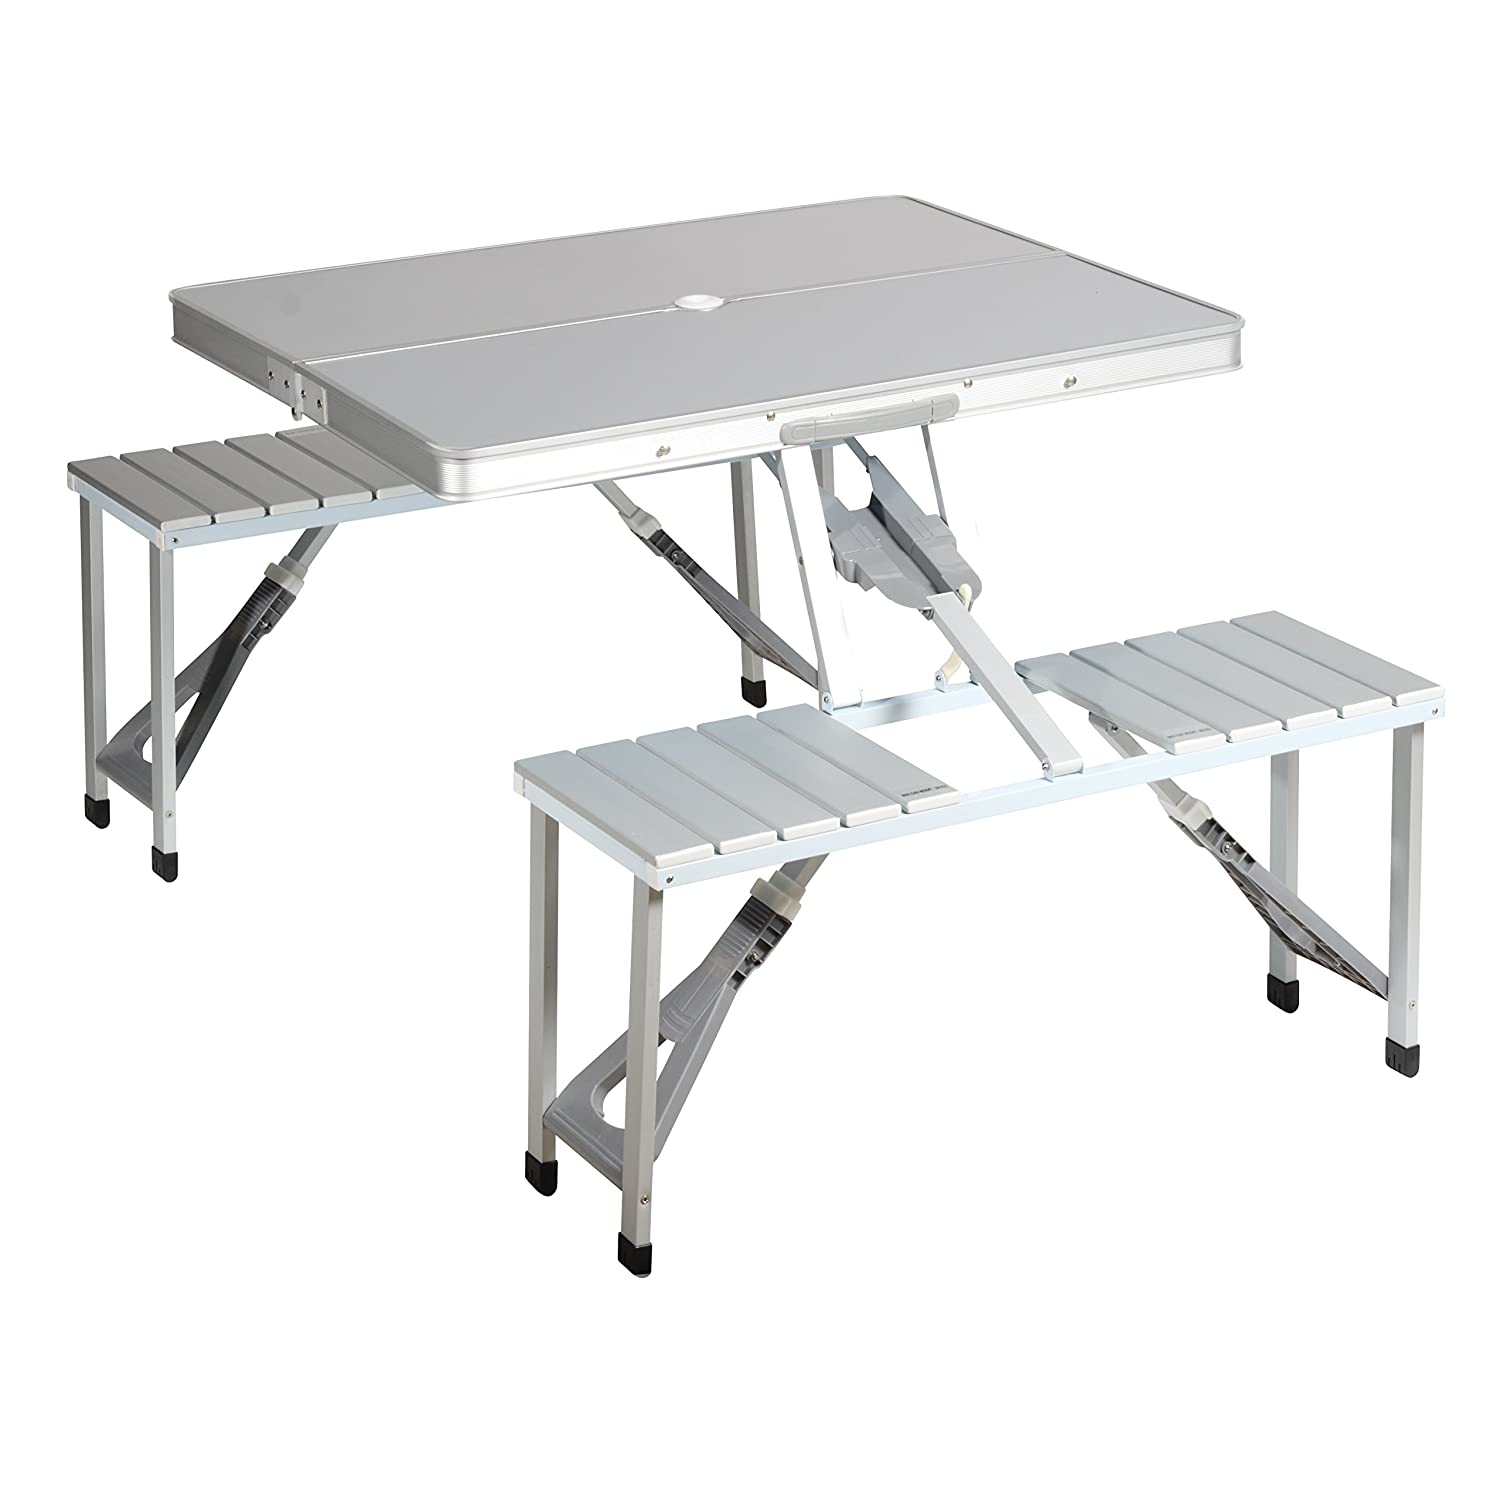 Campart Travel TA-0820 Picnic table – Fold safety system – Aluminum Tristar